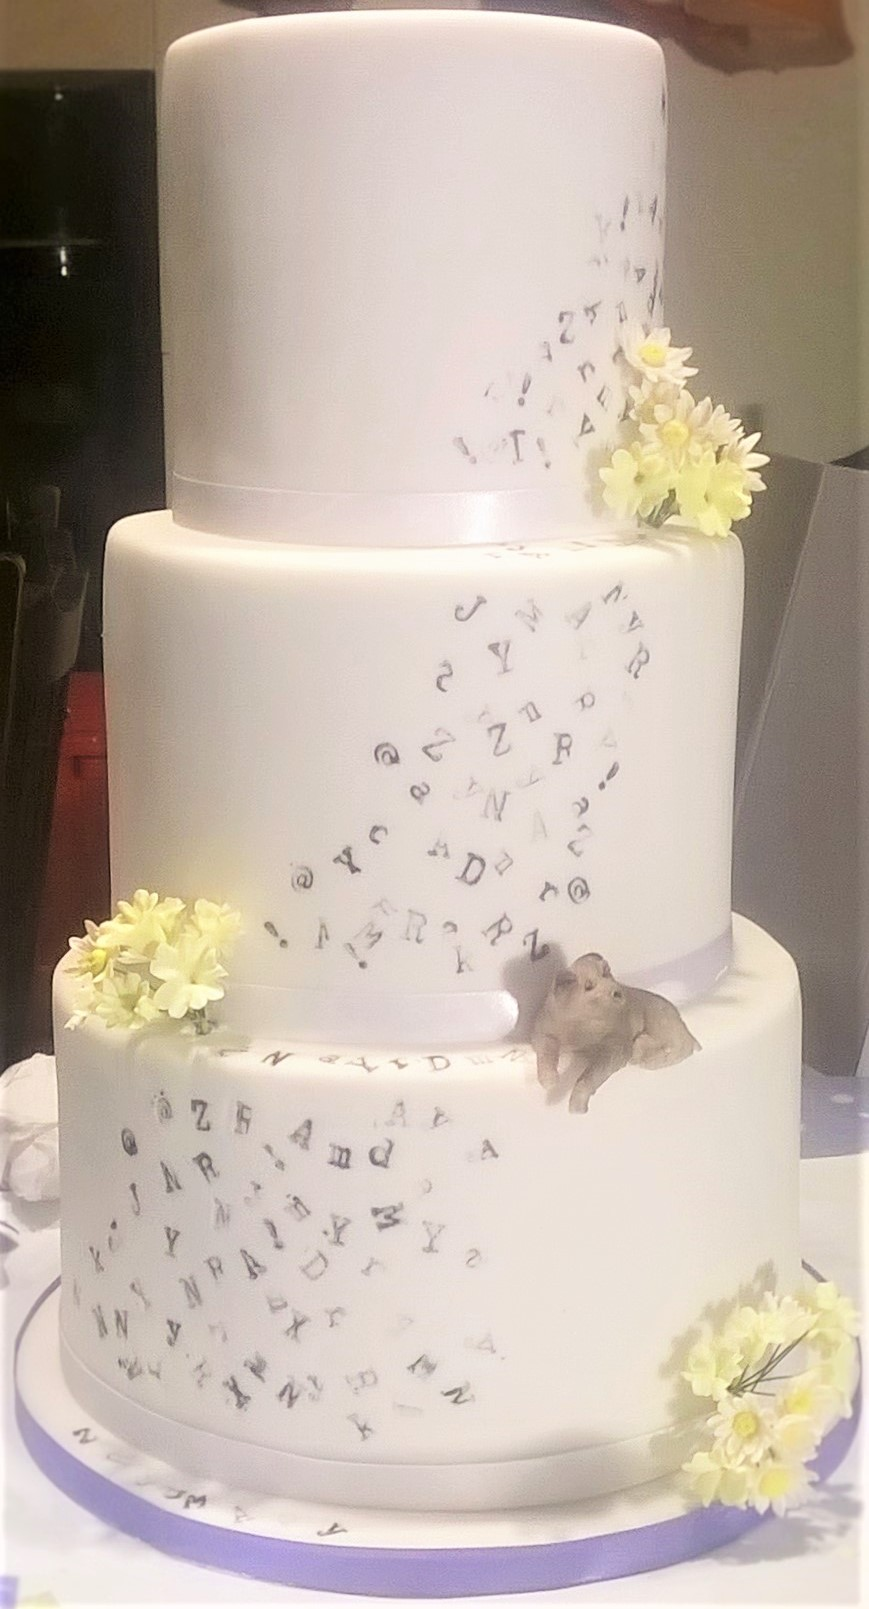 Tiered party cake with sugar flowers and sugar dog